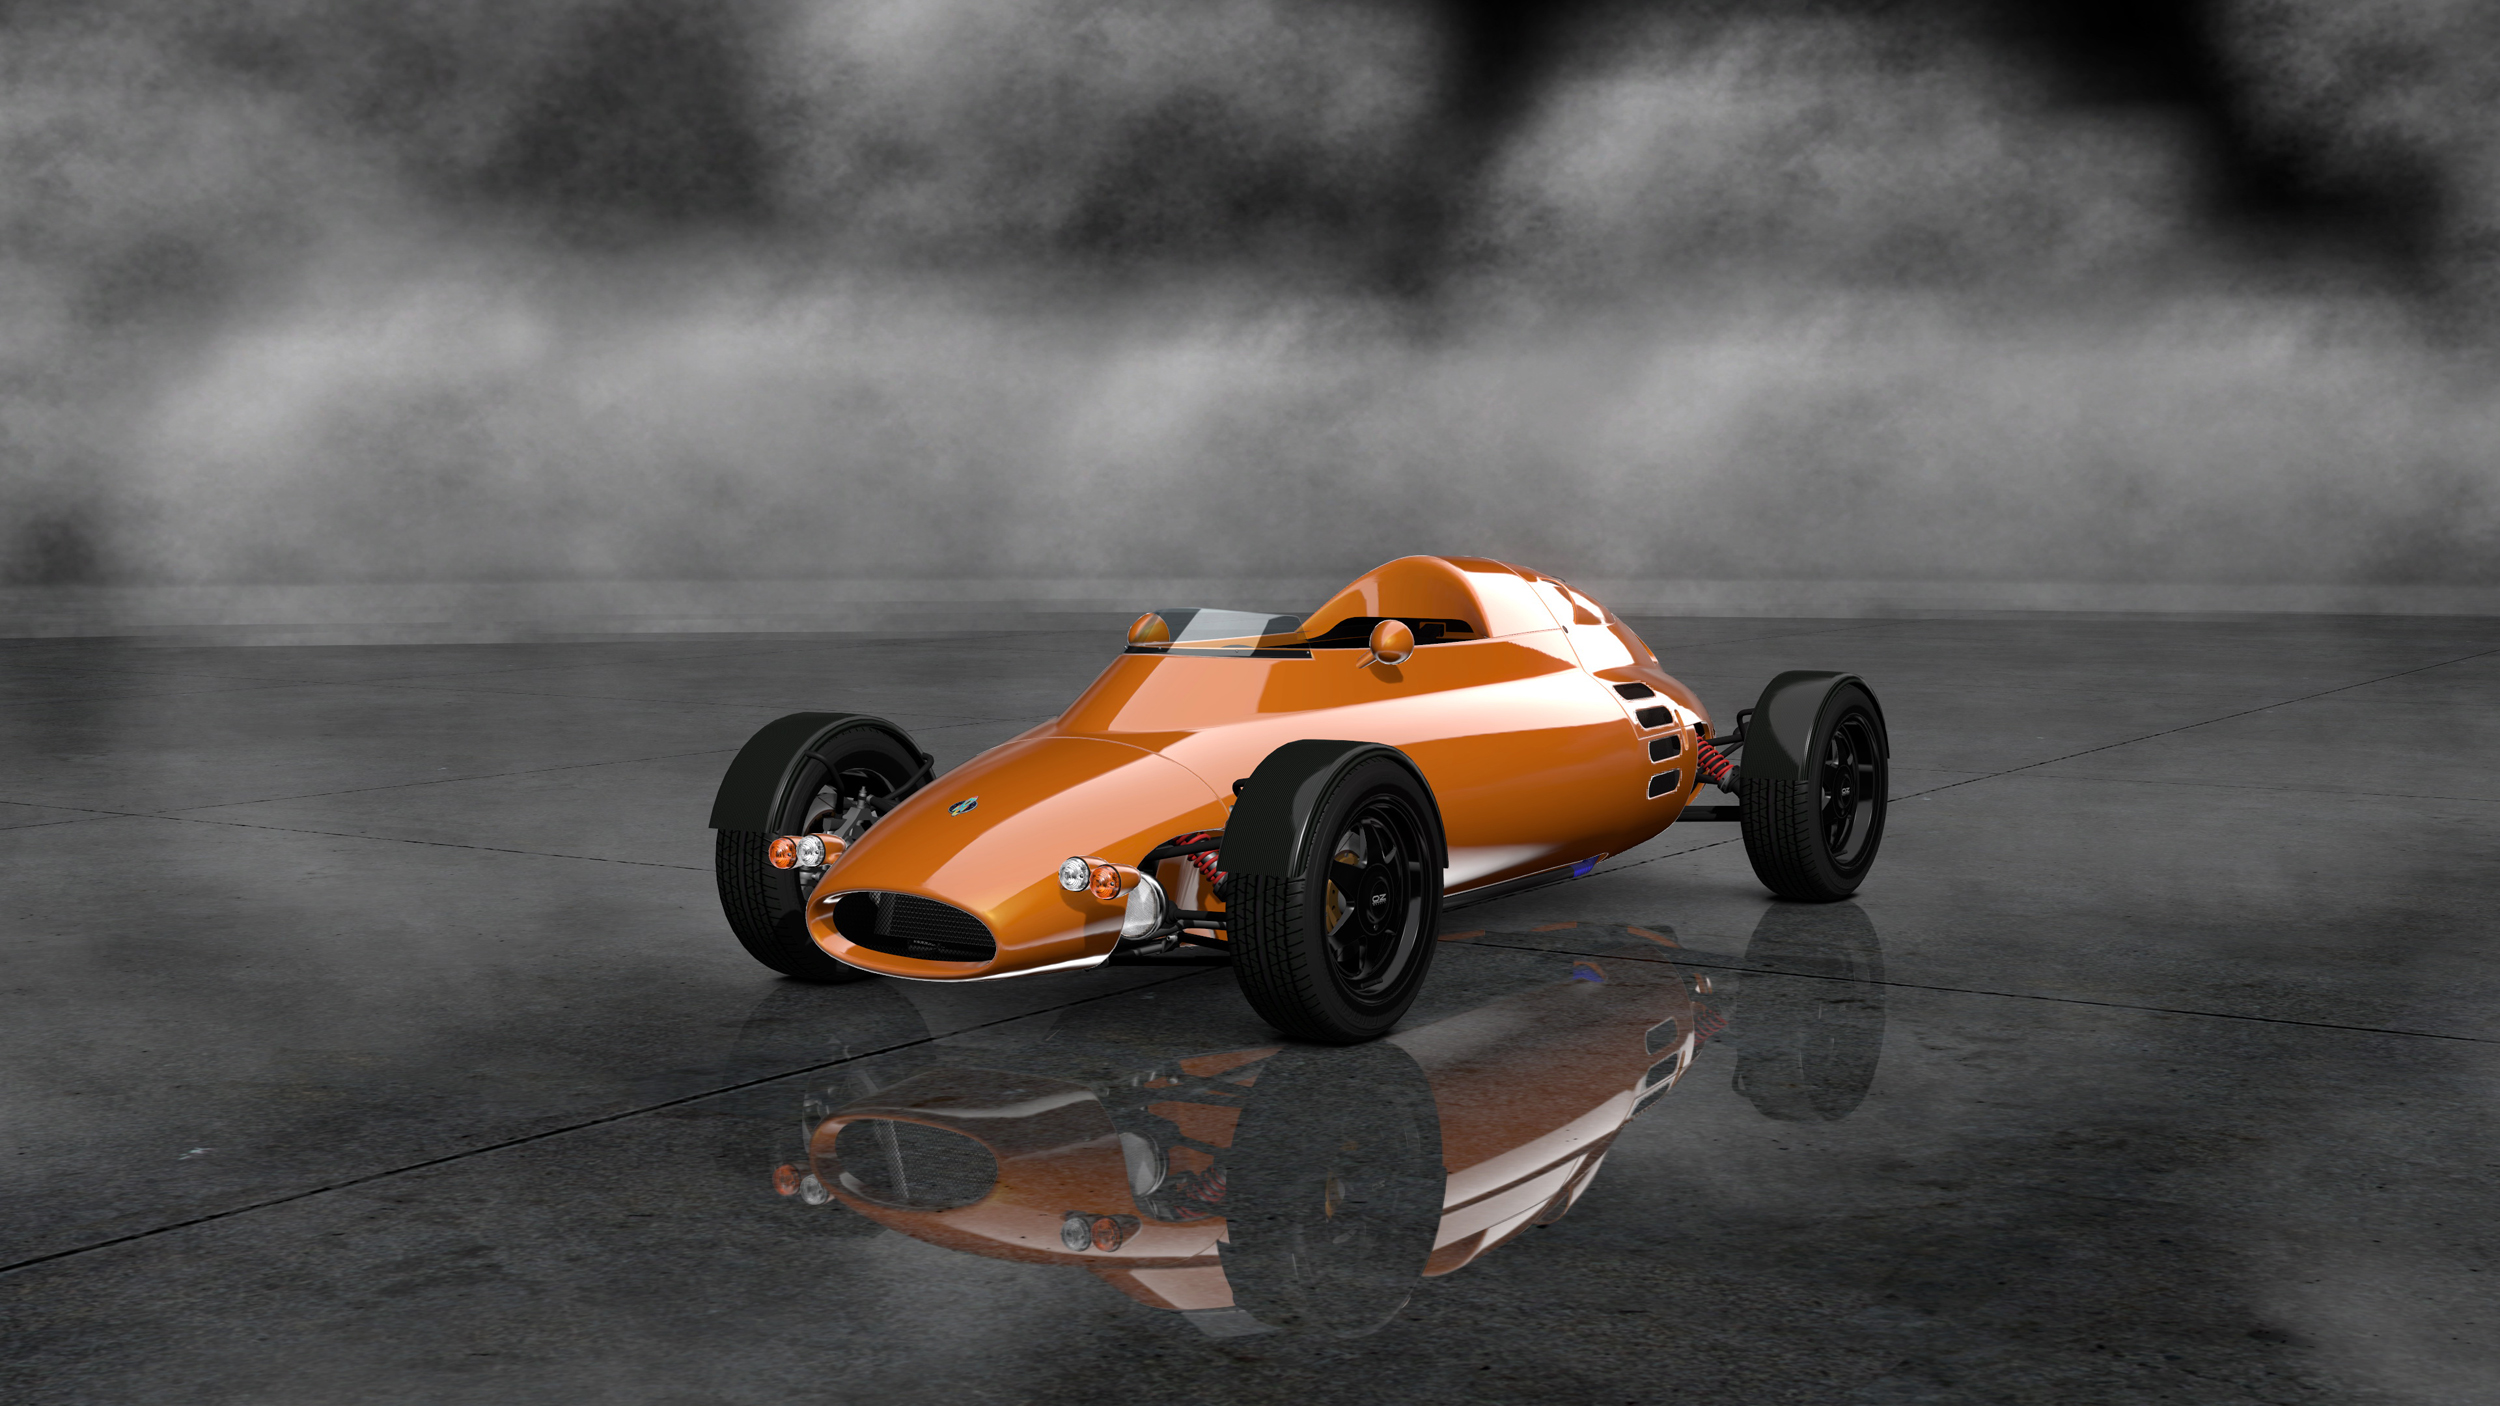 Gran Turismo 6 Light Car Company Rocket '07 Render